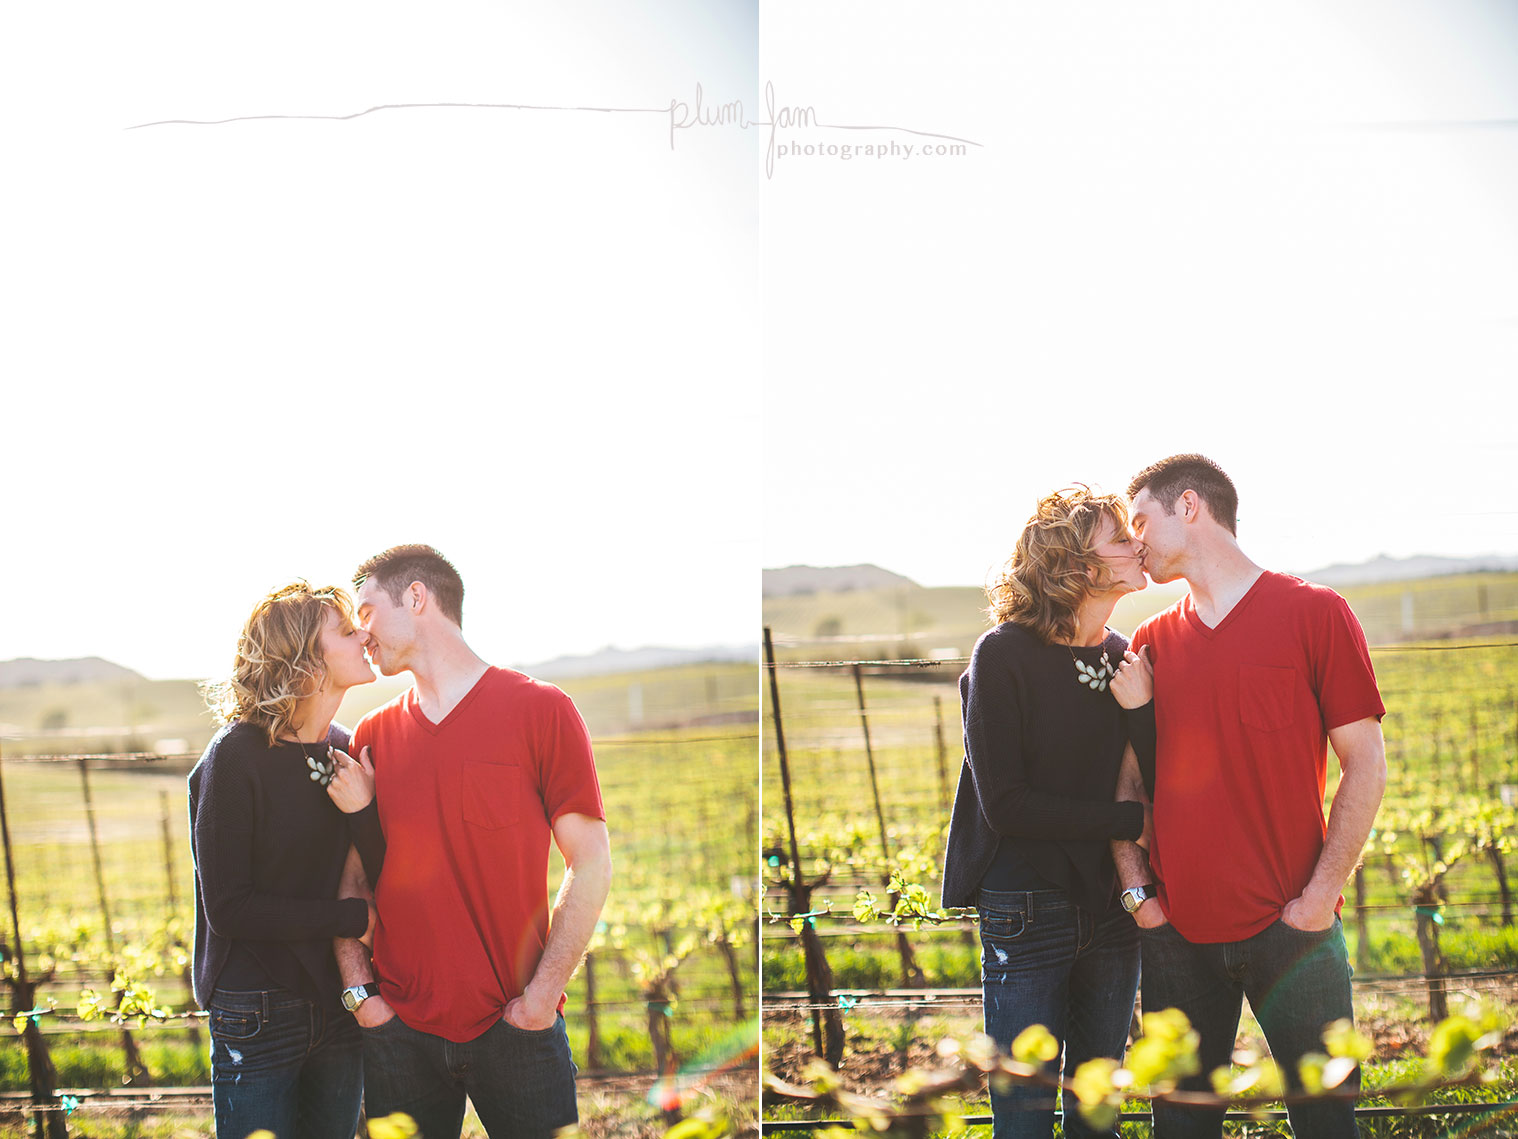 RebeccaMike-Engagement-vineyard-shellbeach-california-plumjamphotography-05